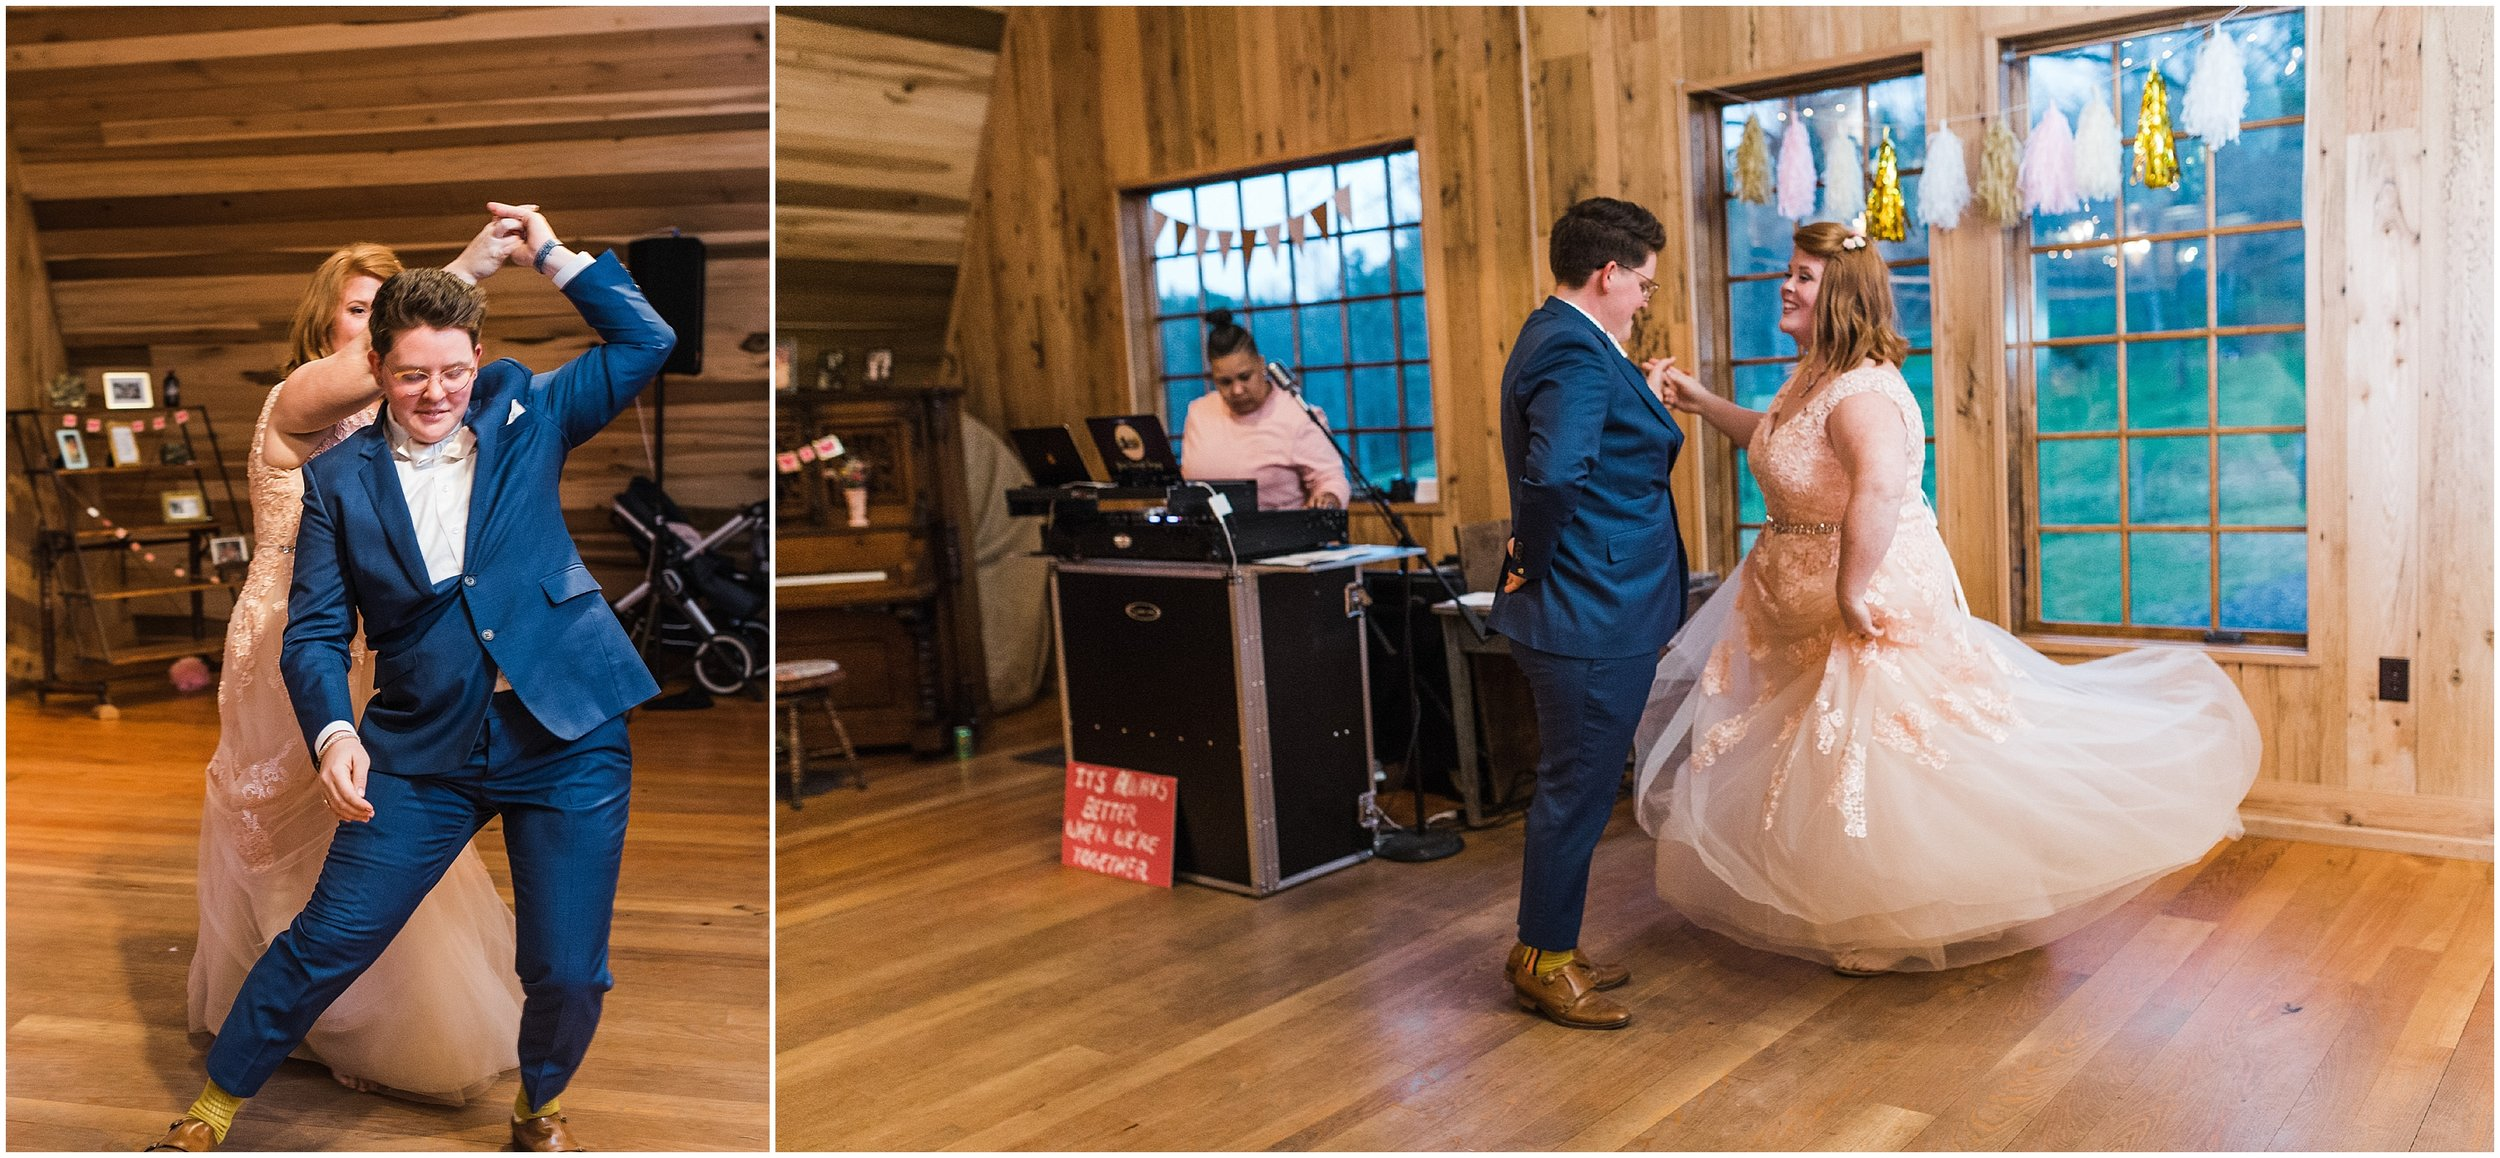 Heather+Rah Wedding Highlights-291.jpg